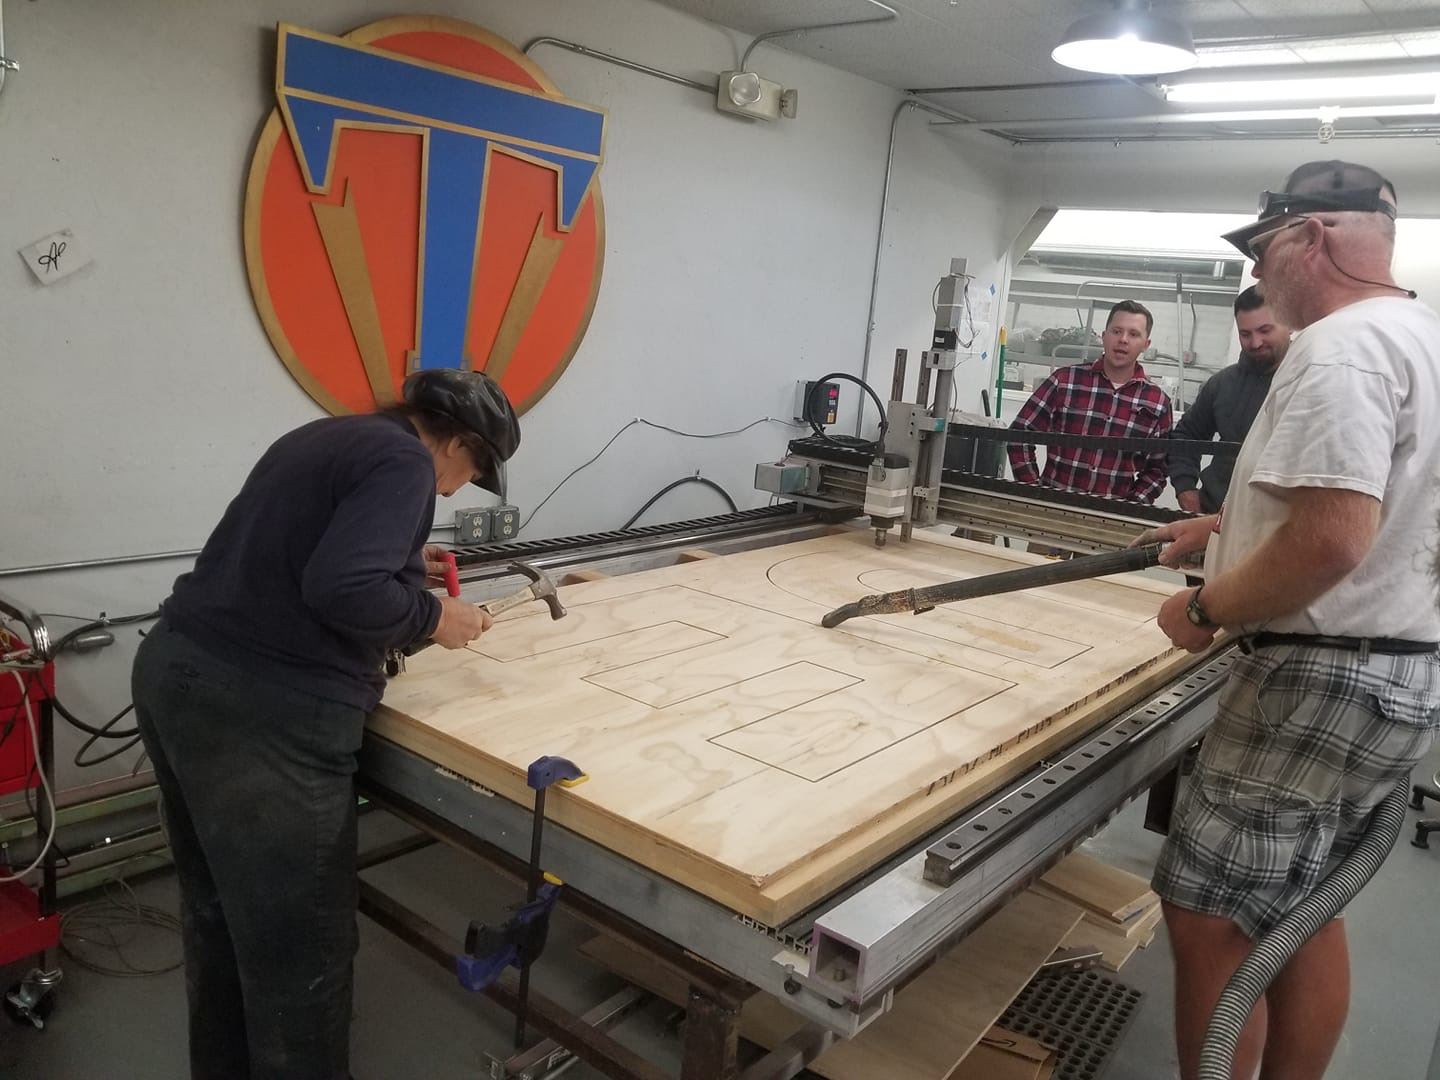 ideaworks makerspaces - classes